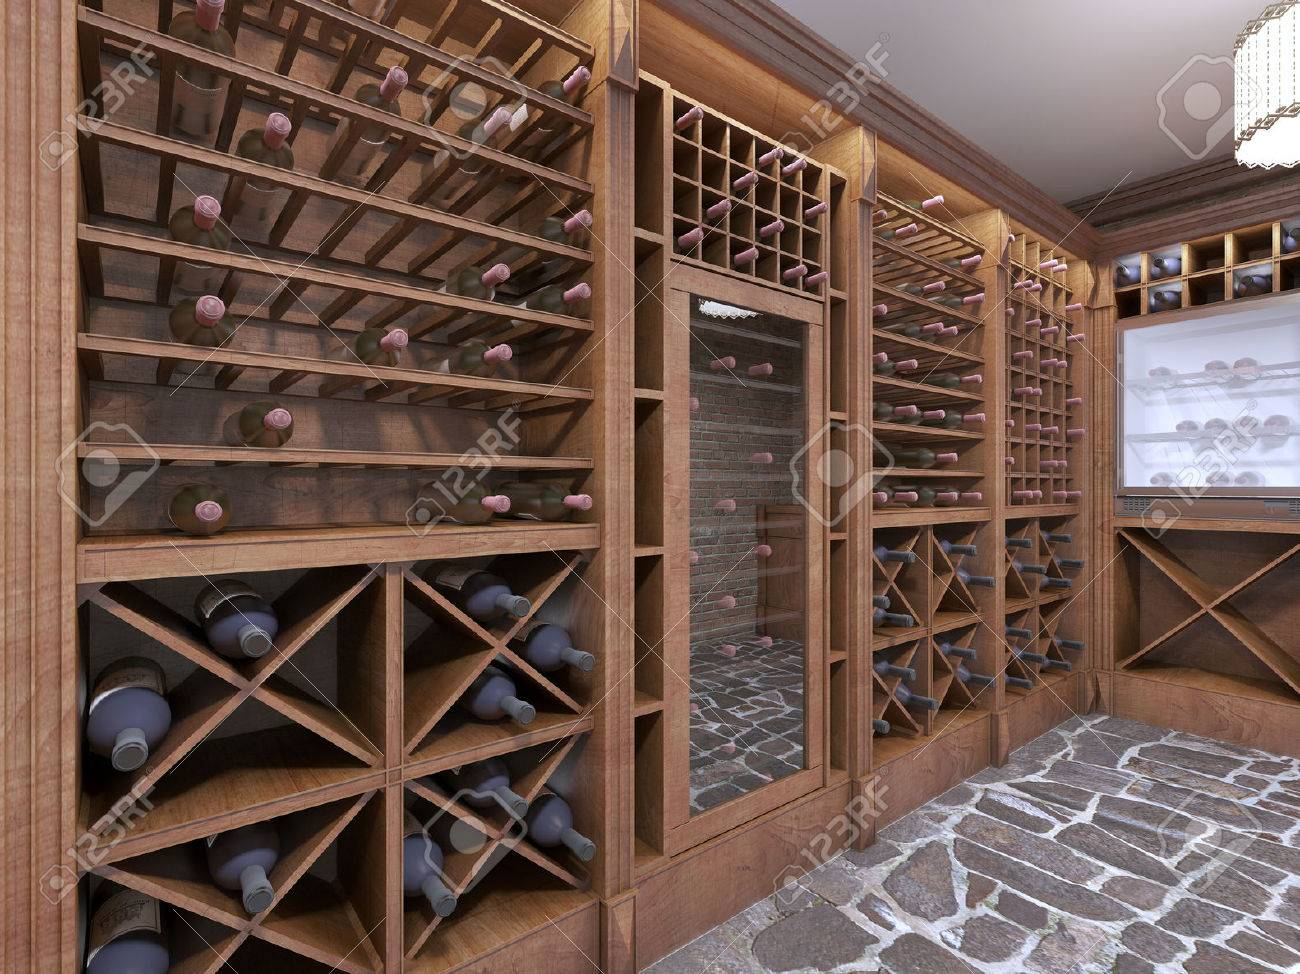 Wine Cellar In The Basement Of The House In A Rustic Style Open Stock Photo Picture And Royalty Free Image Image 66537260